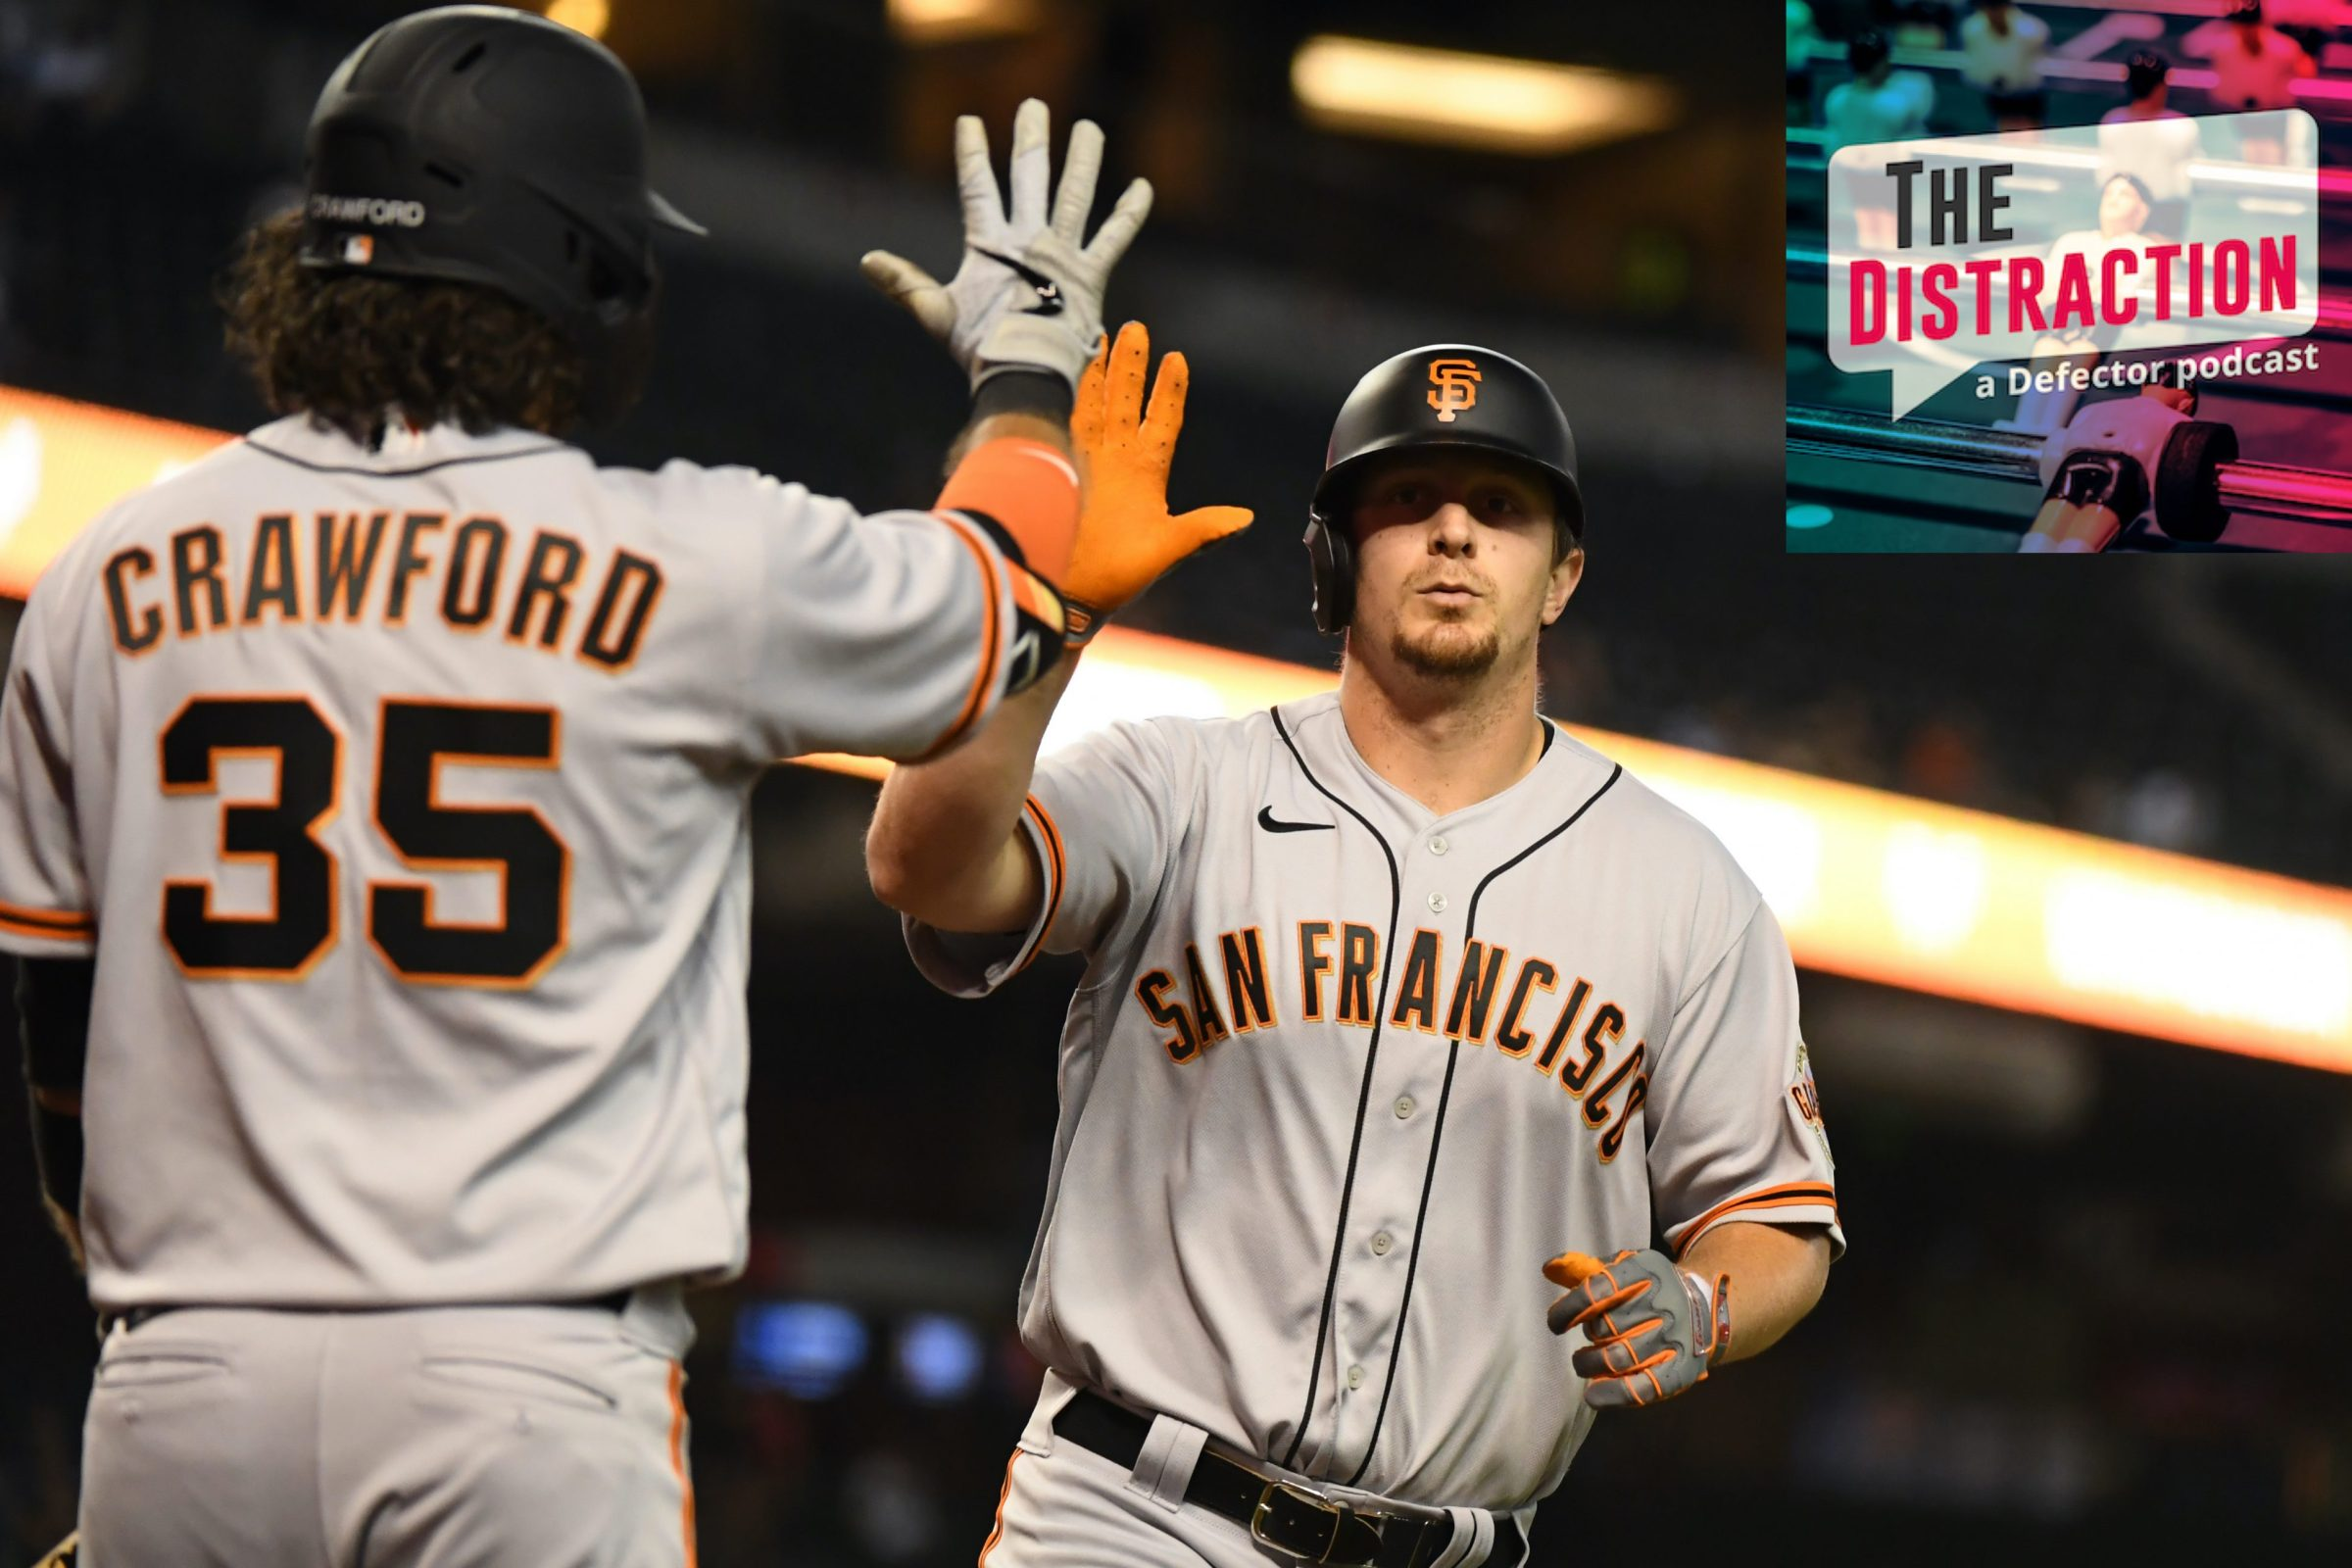 Alex Dickerson and Brandon Crawford congratulate each other at home plate, presumably for being talked about on this episode of The Distraction.